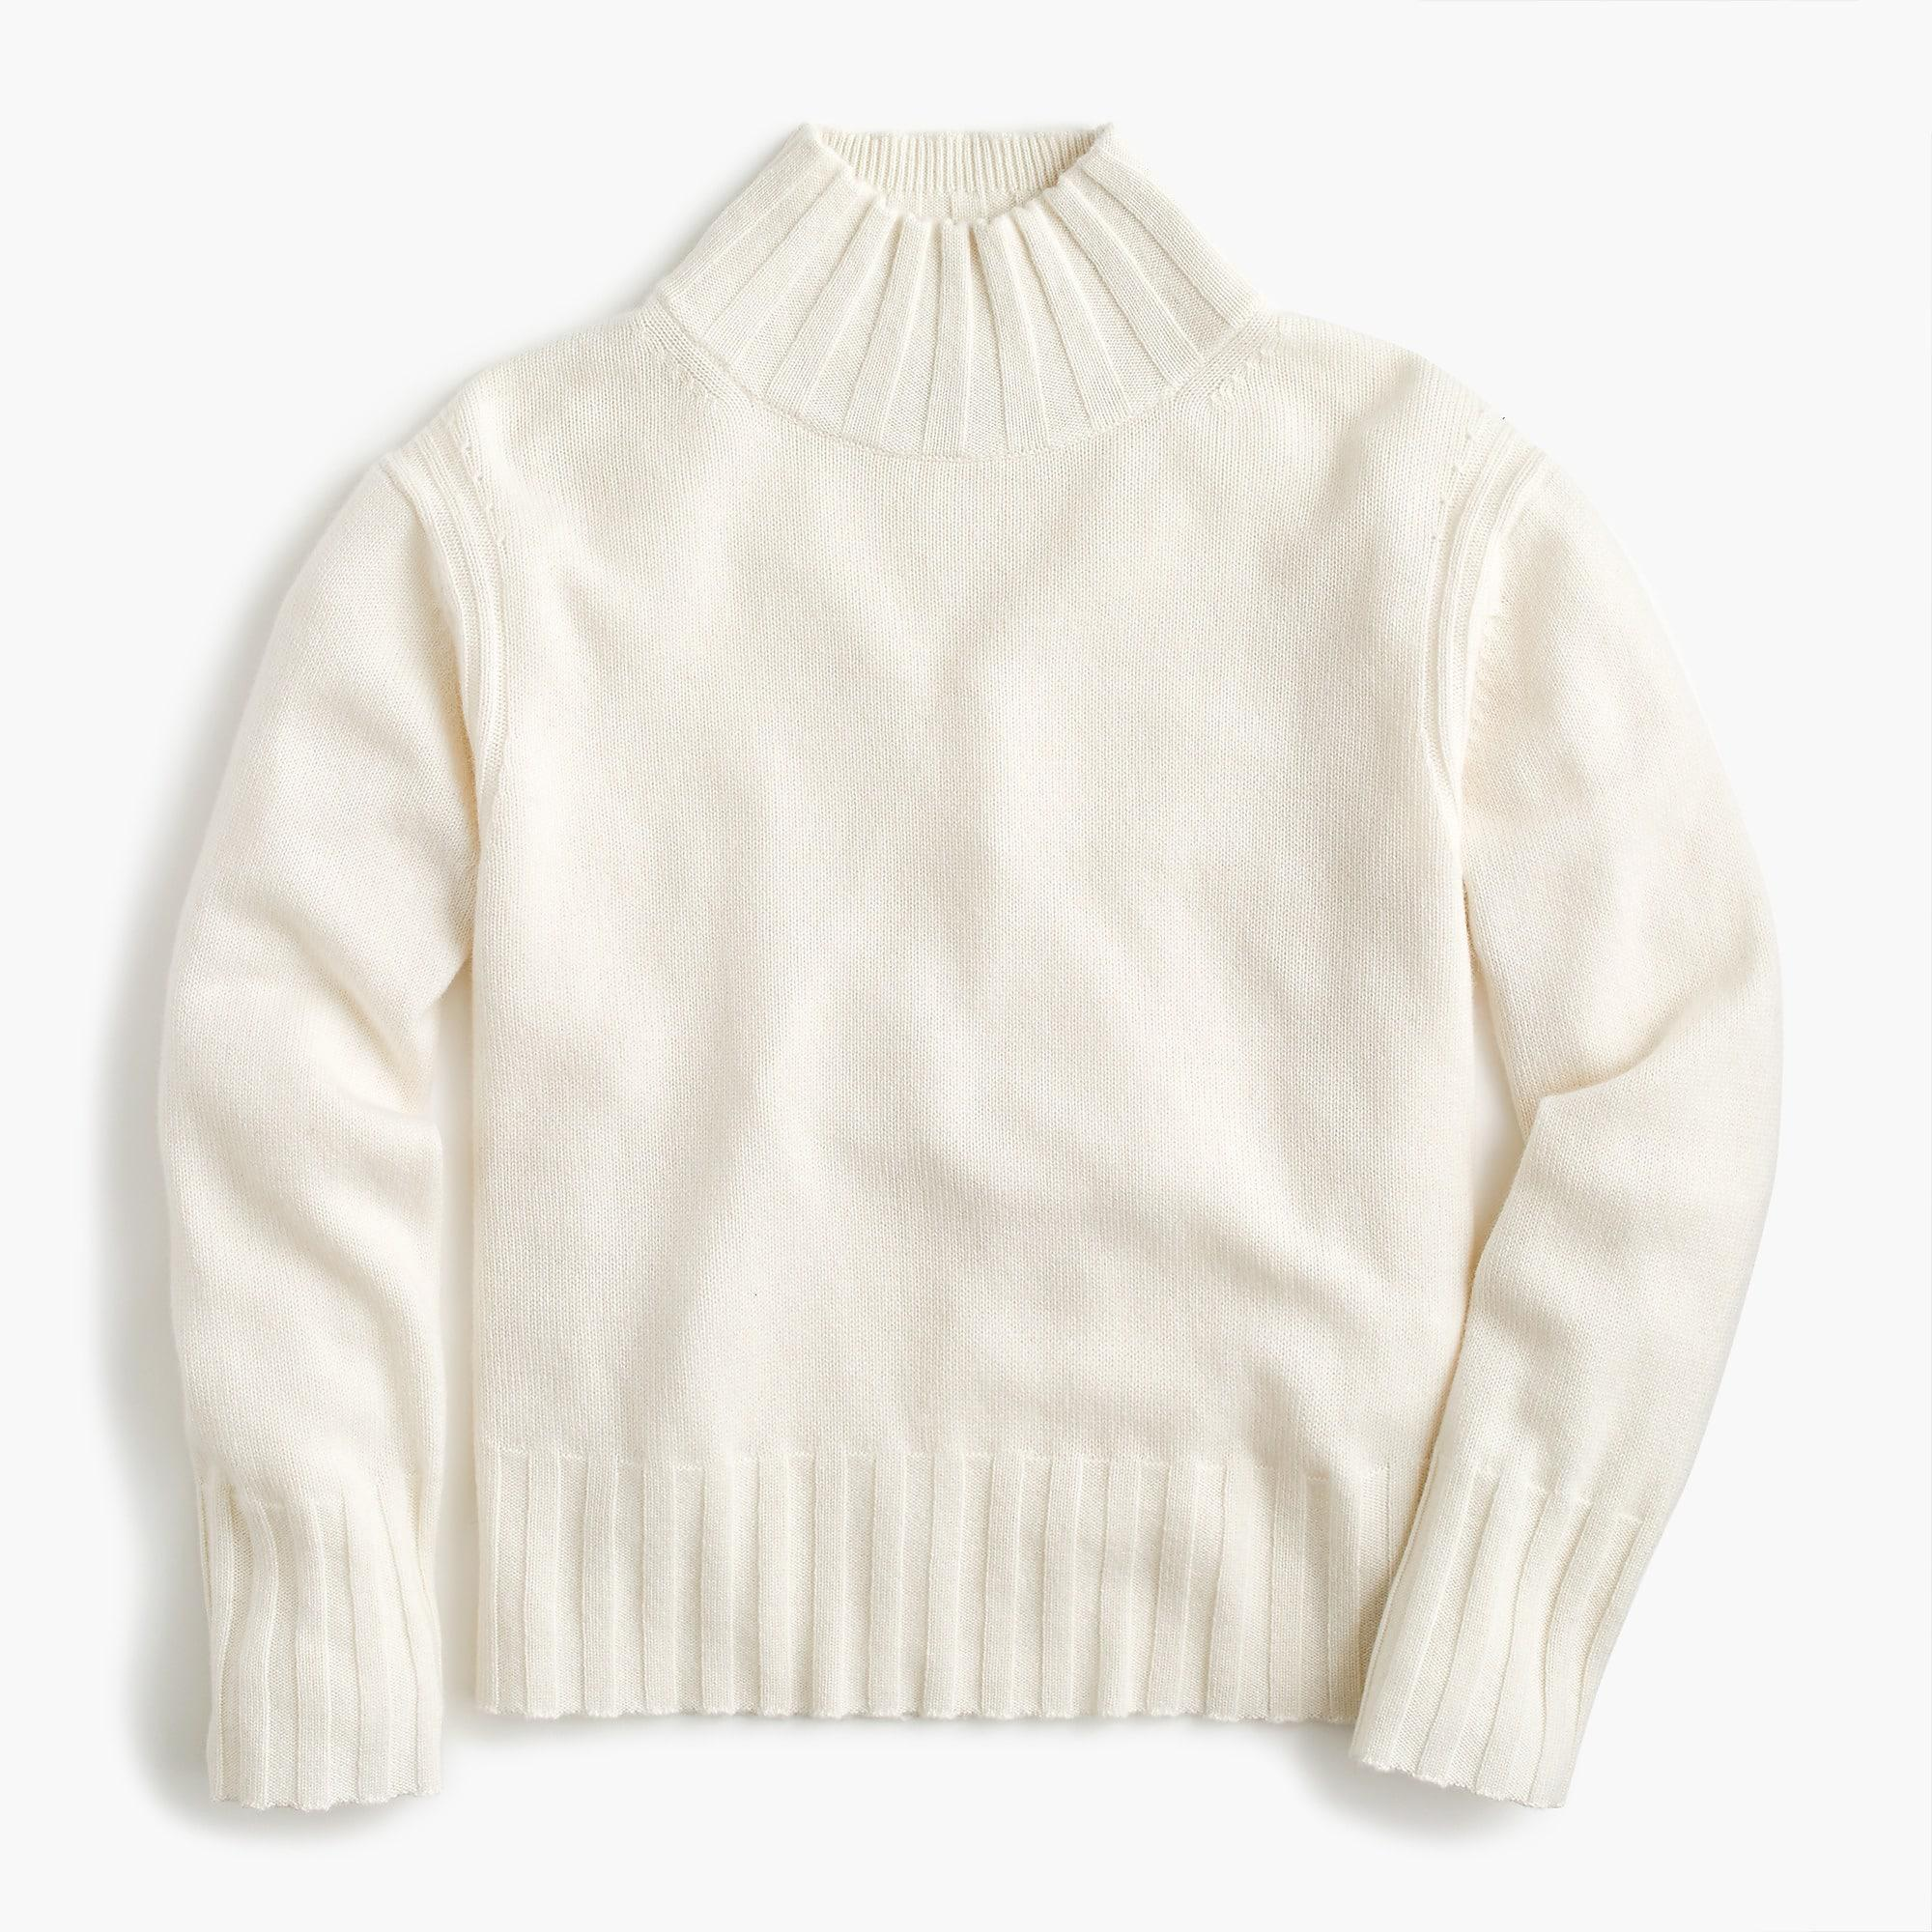 aa2fa34a69b J.Crew Relaxed Mockneck Sweater In Cashmere in Natural - Lyst